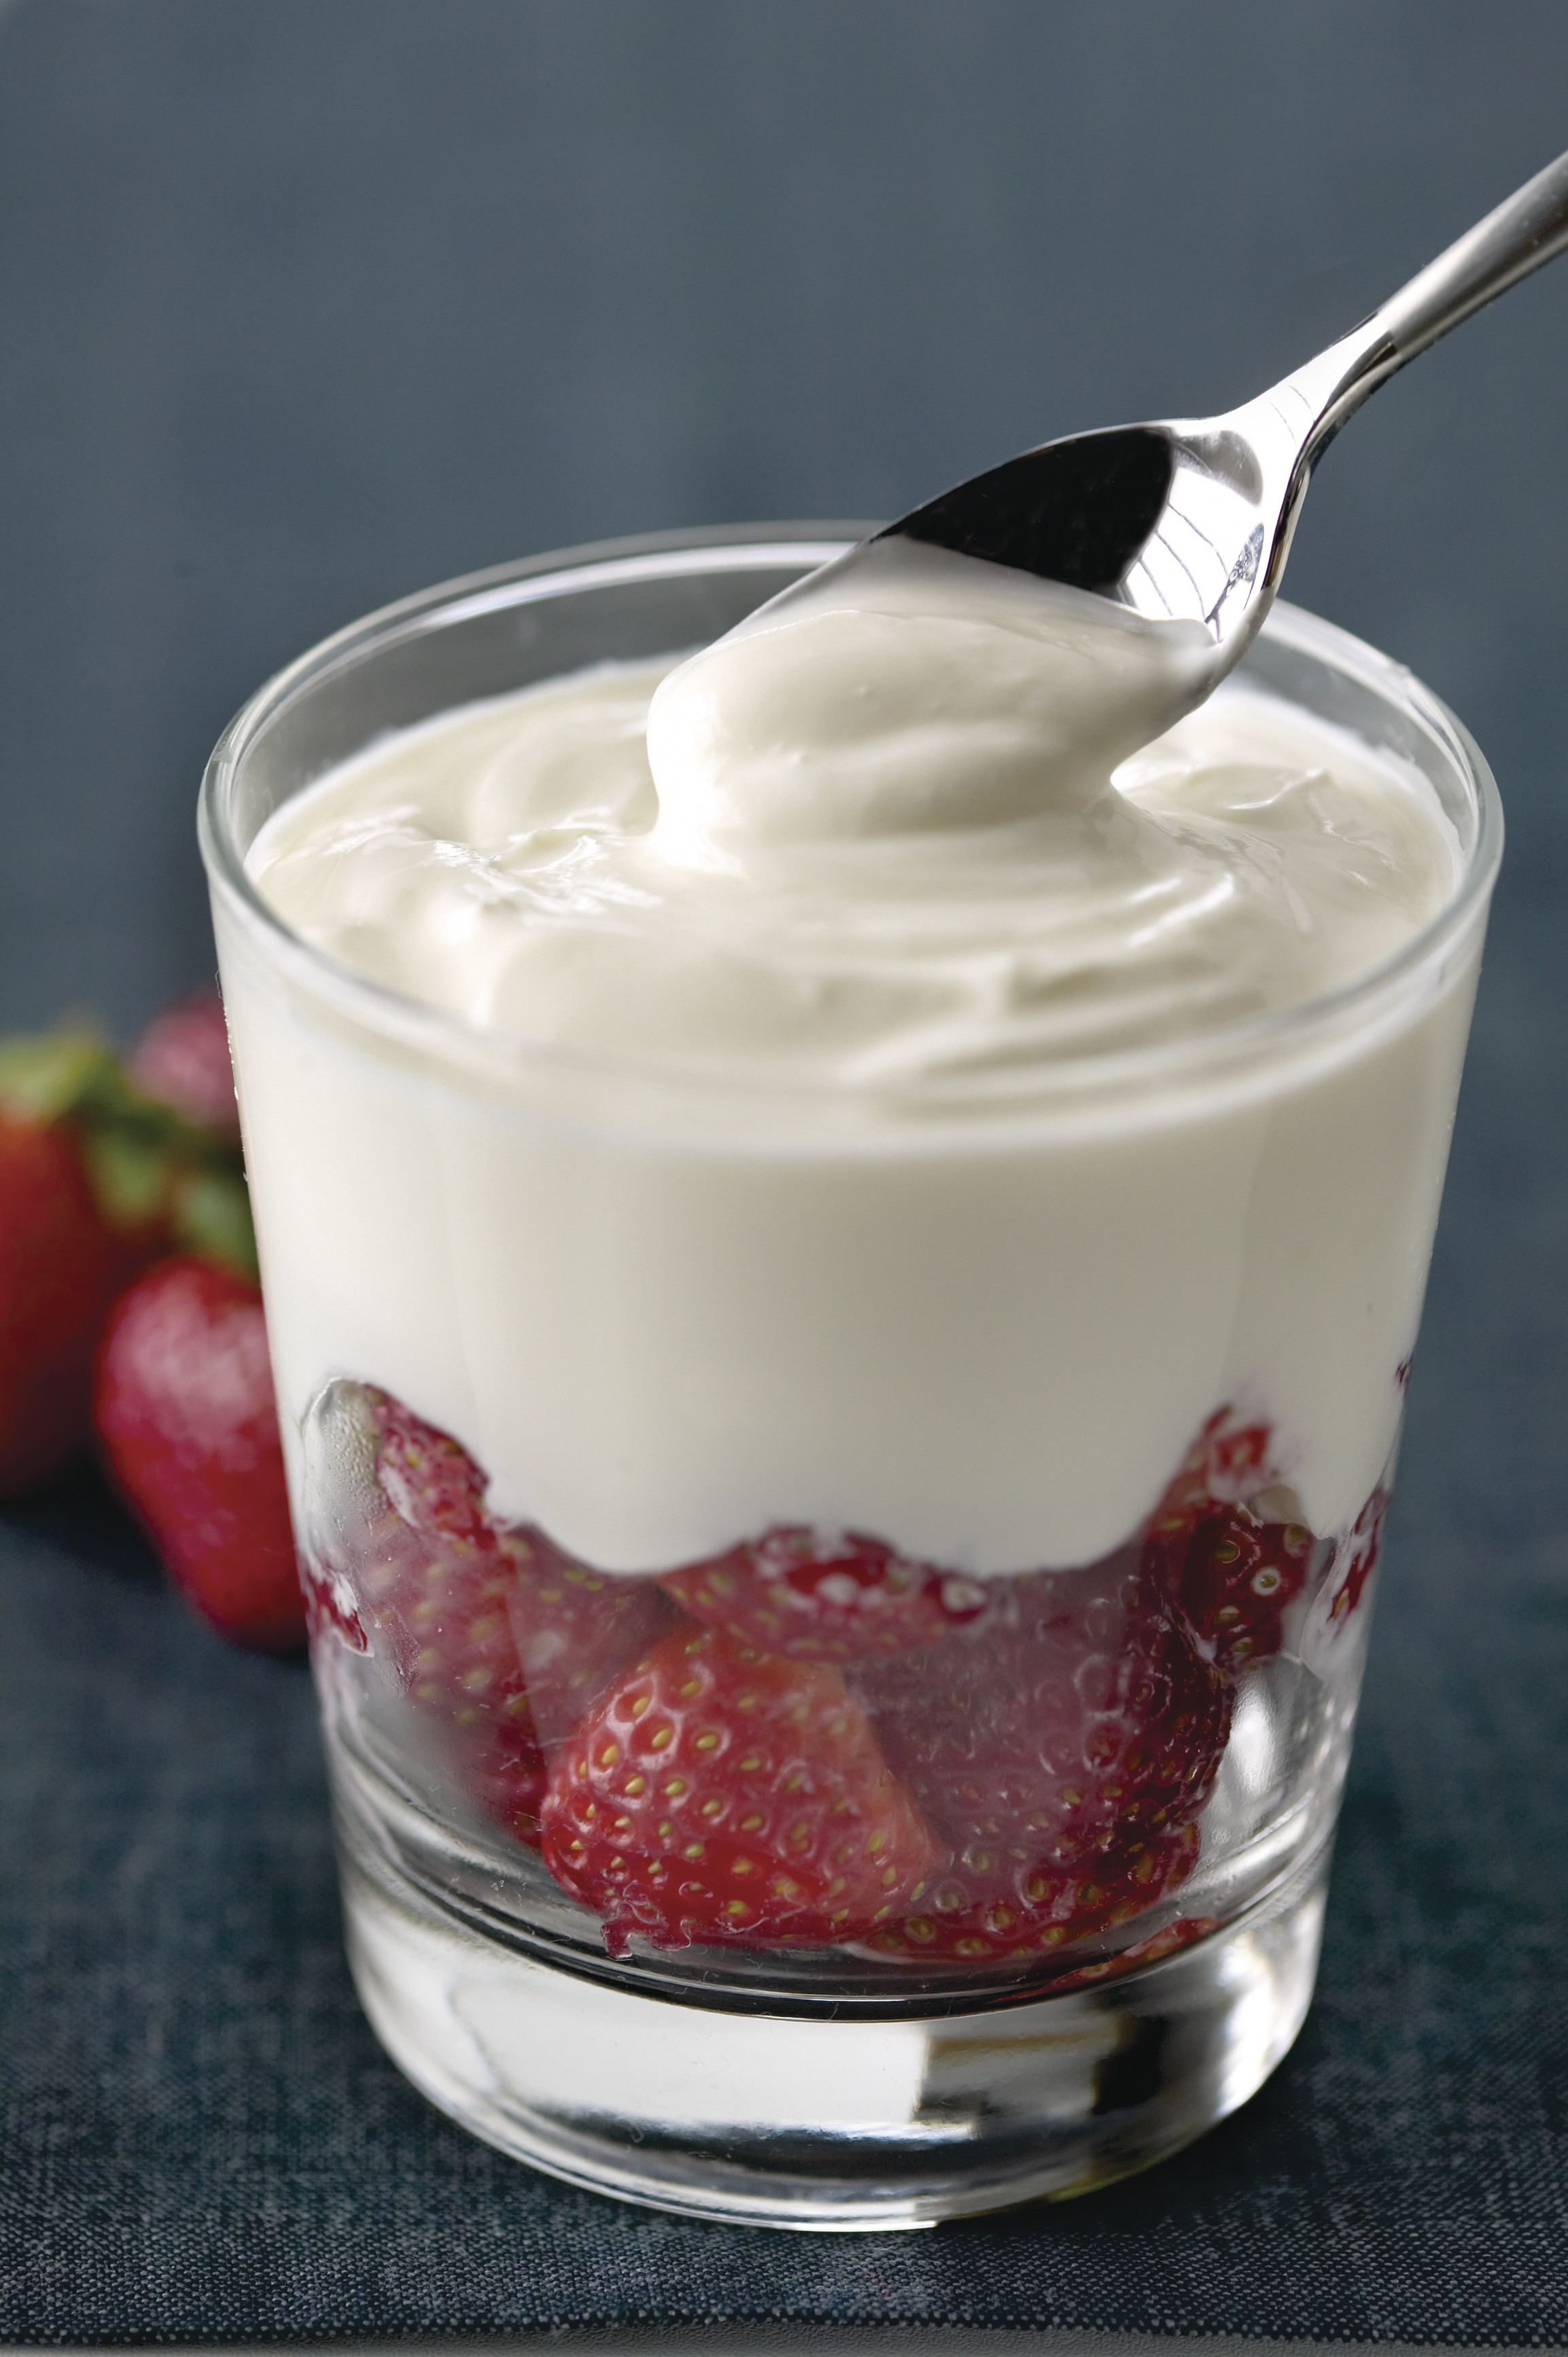 Glass of strawberries and cream